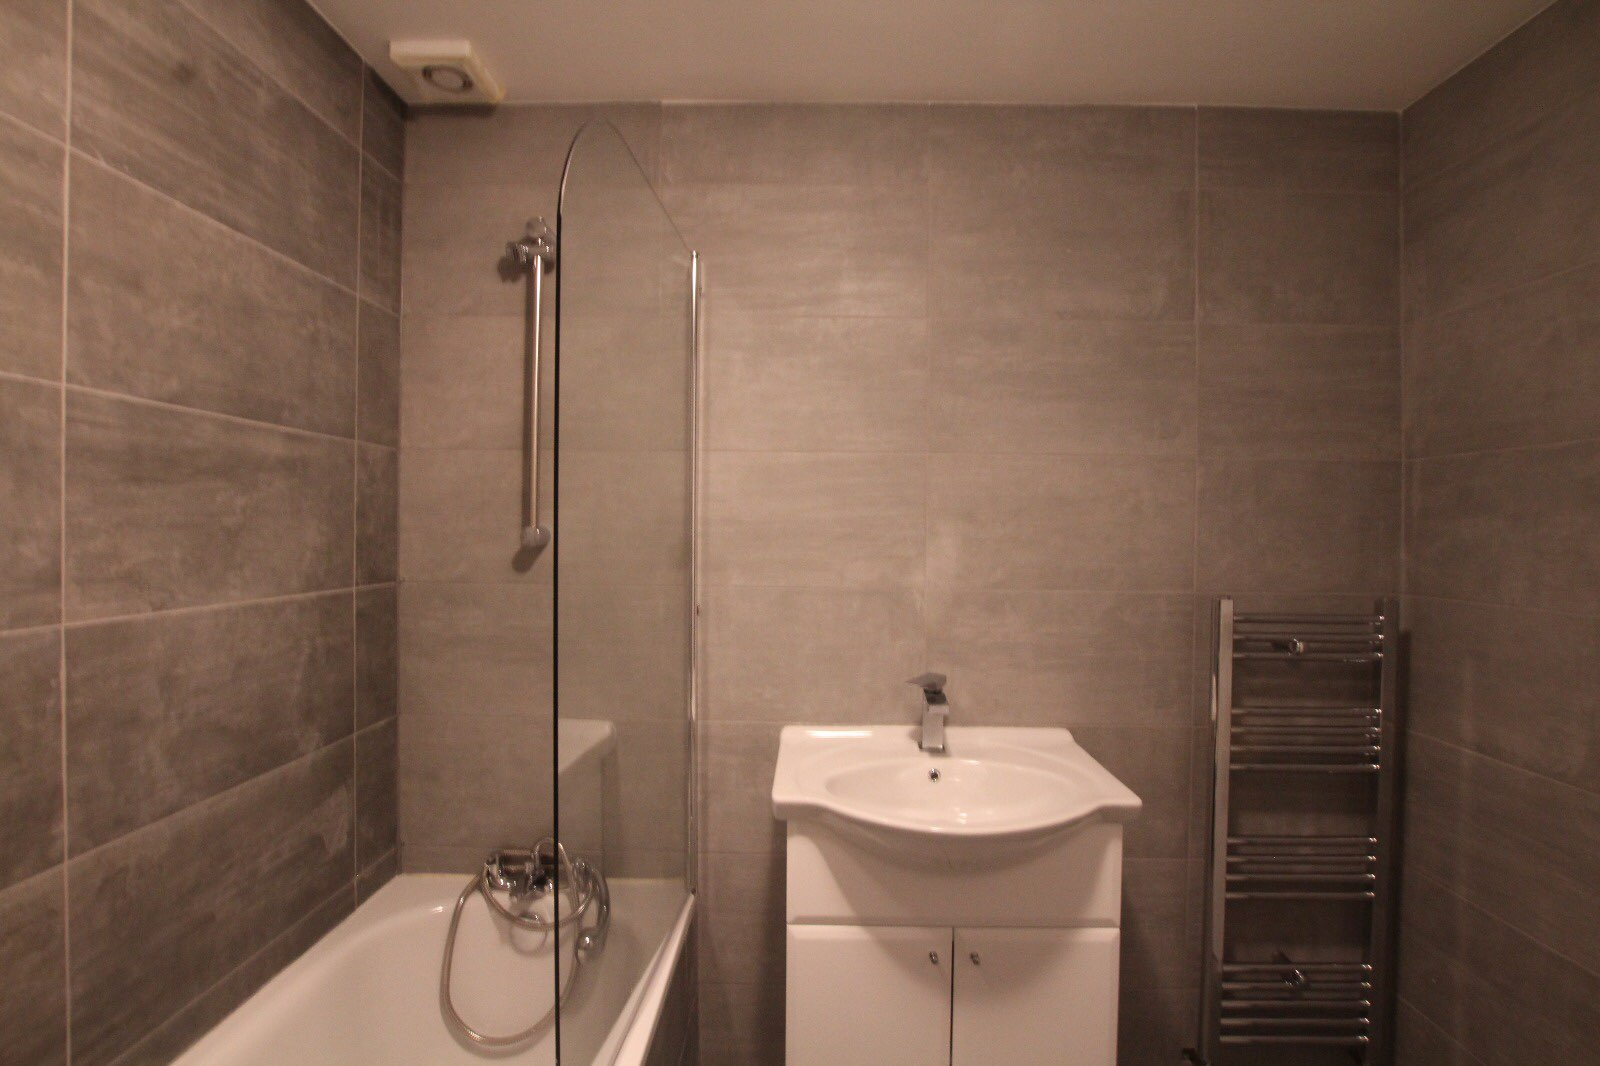 4 rooms in Clapham, Bedford, MK41 7XF RoomsLocal image